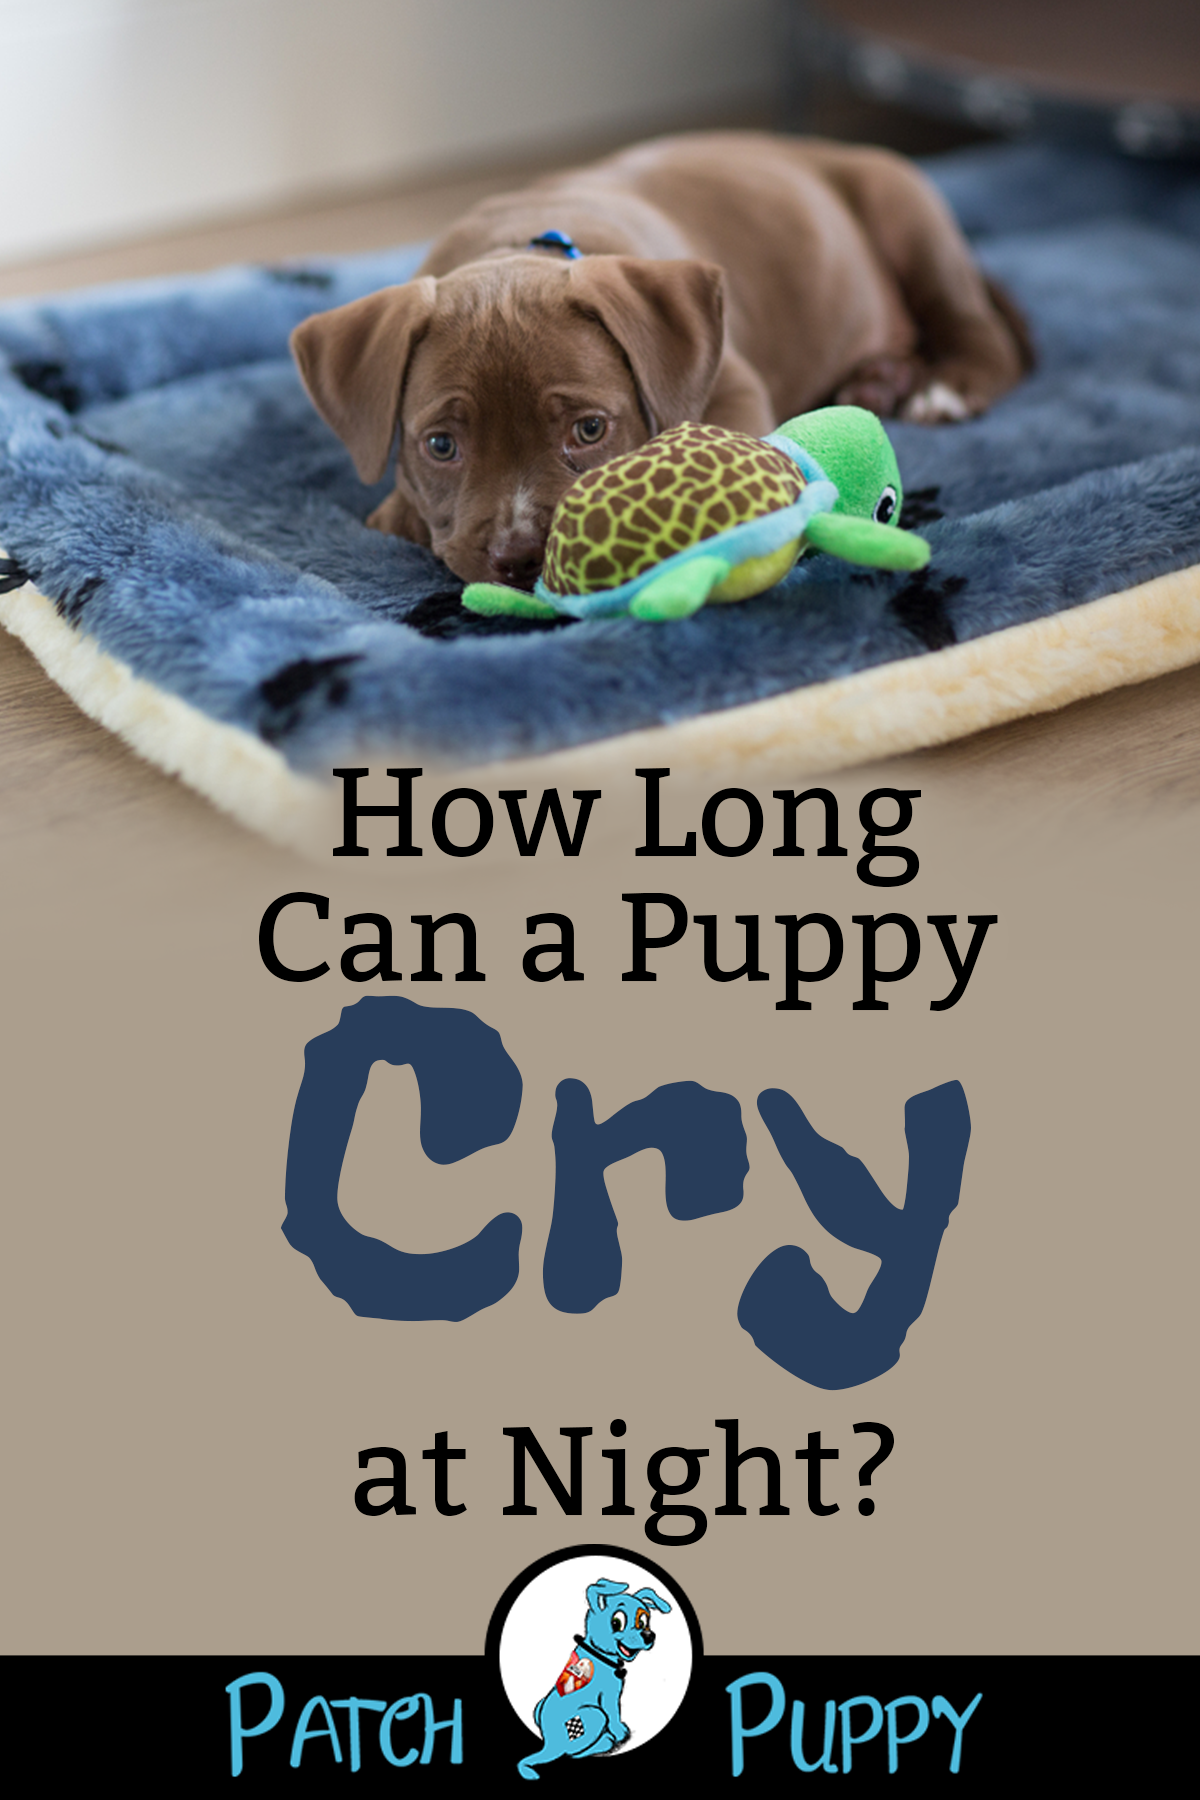 7 Simple Steps For Crate Training A Puppy The First Night Patchpuppy Com Puppy Training Schedule Crying Puppy At Night Puppy Training